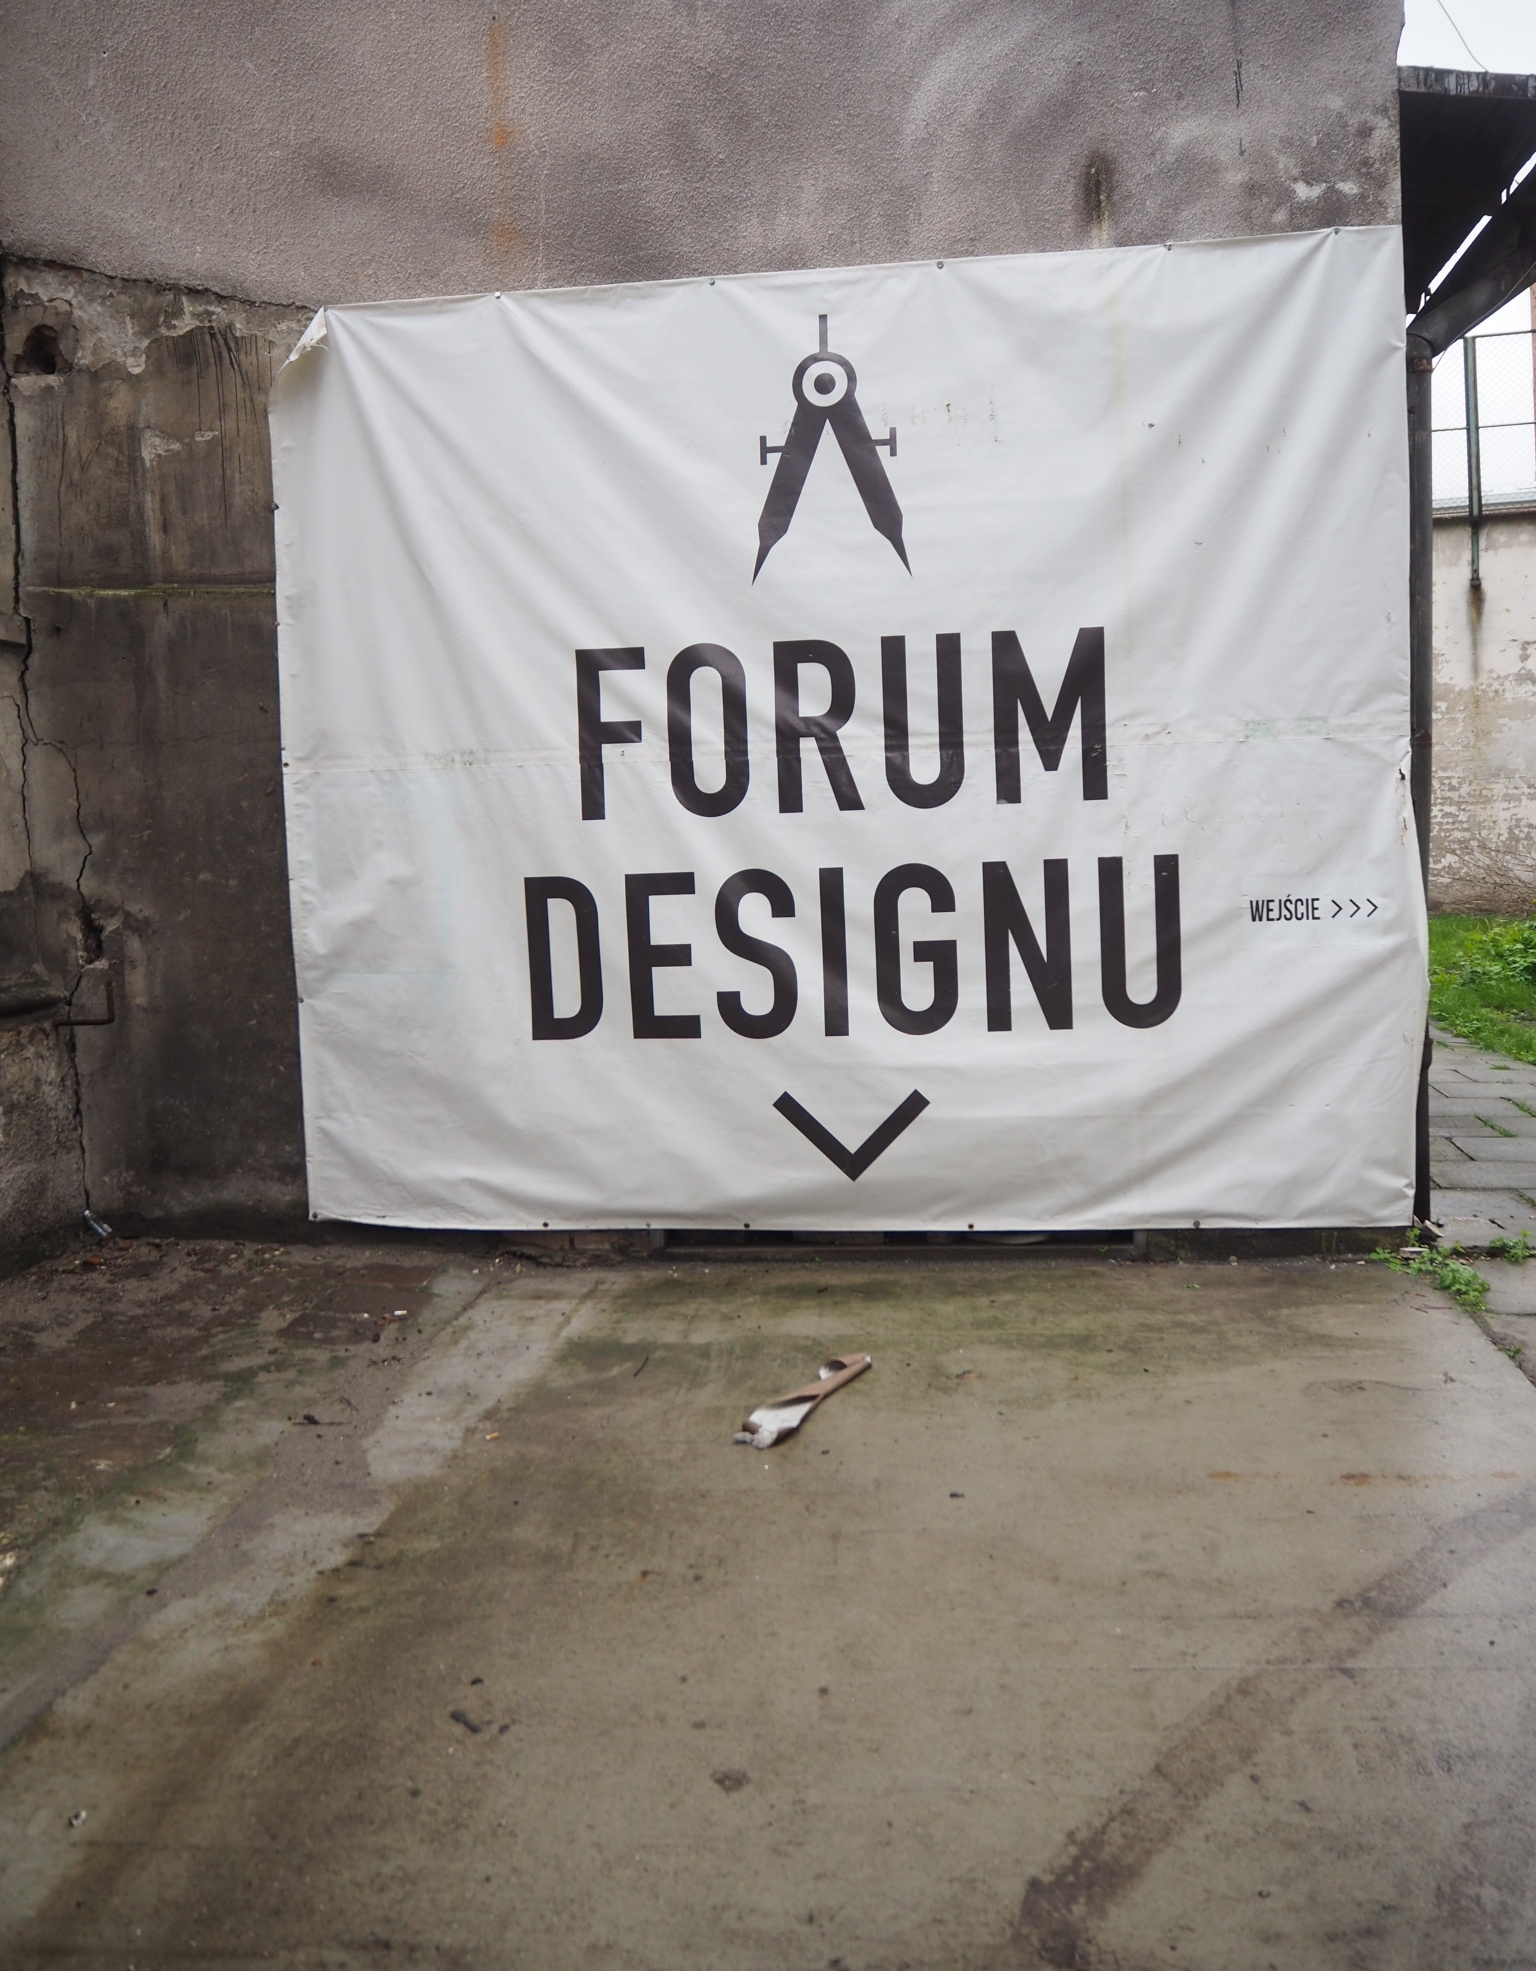 The Forum Designu in an old converted tobacco factory in Krakow.